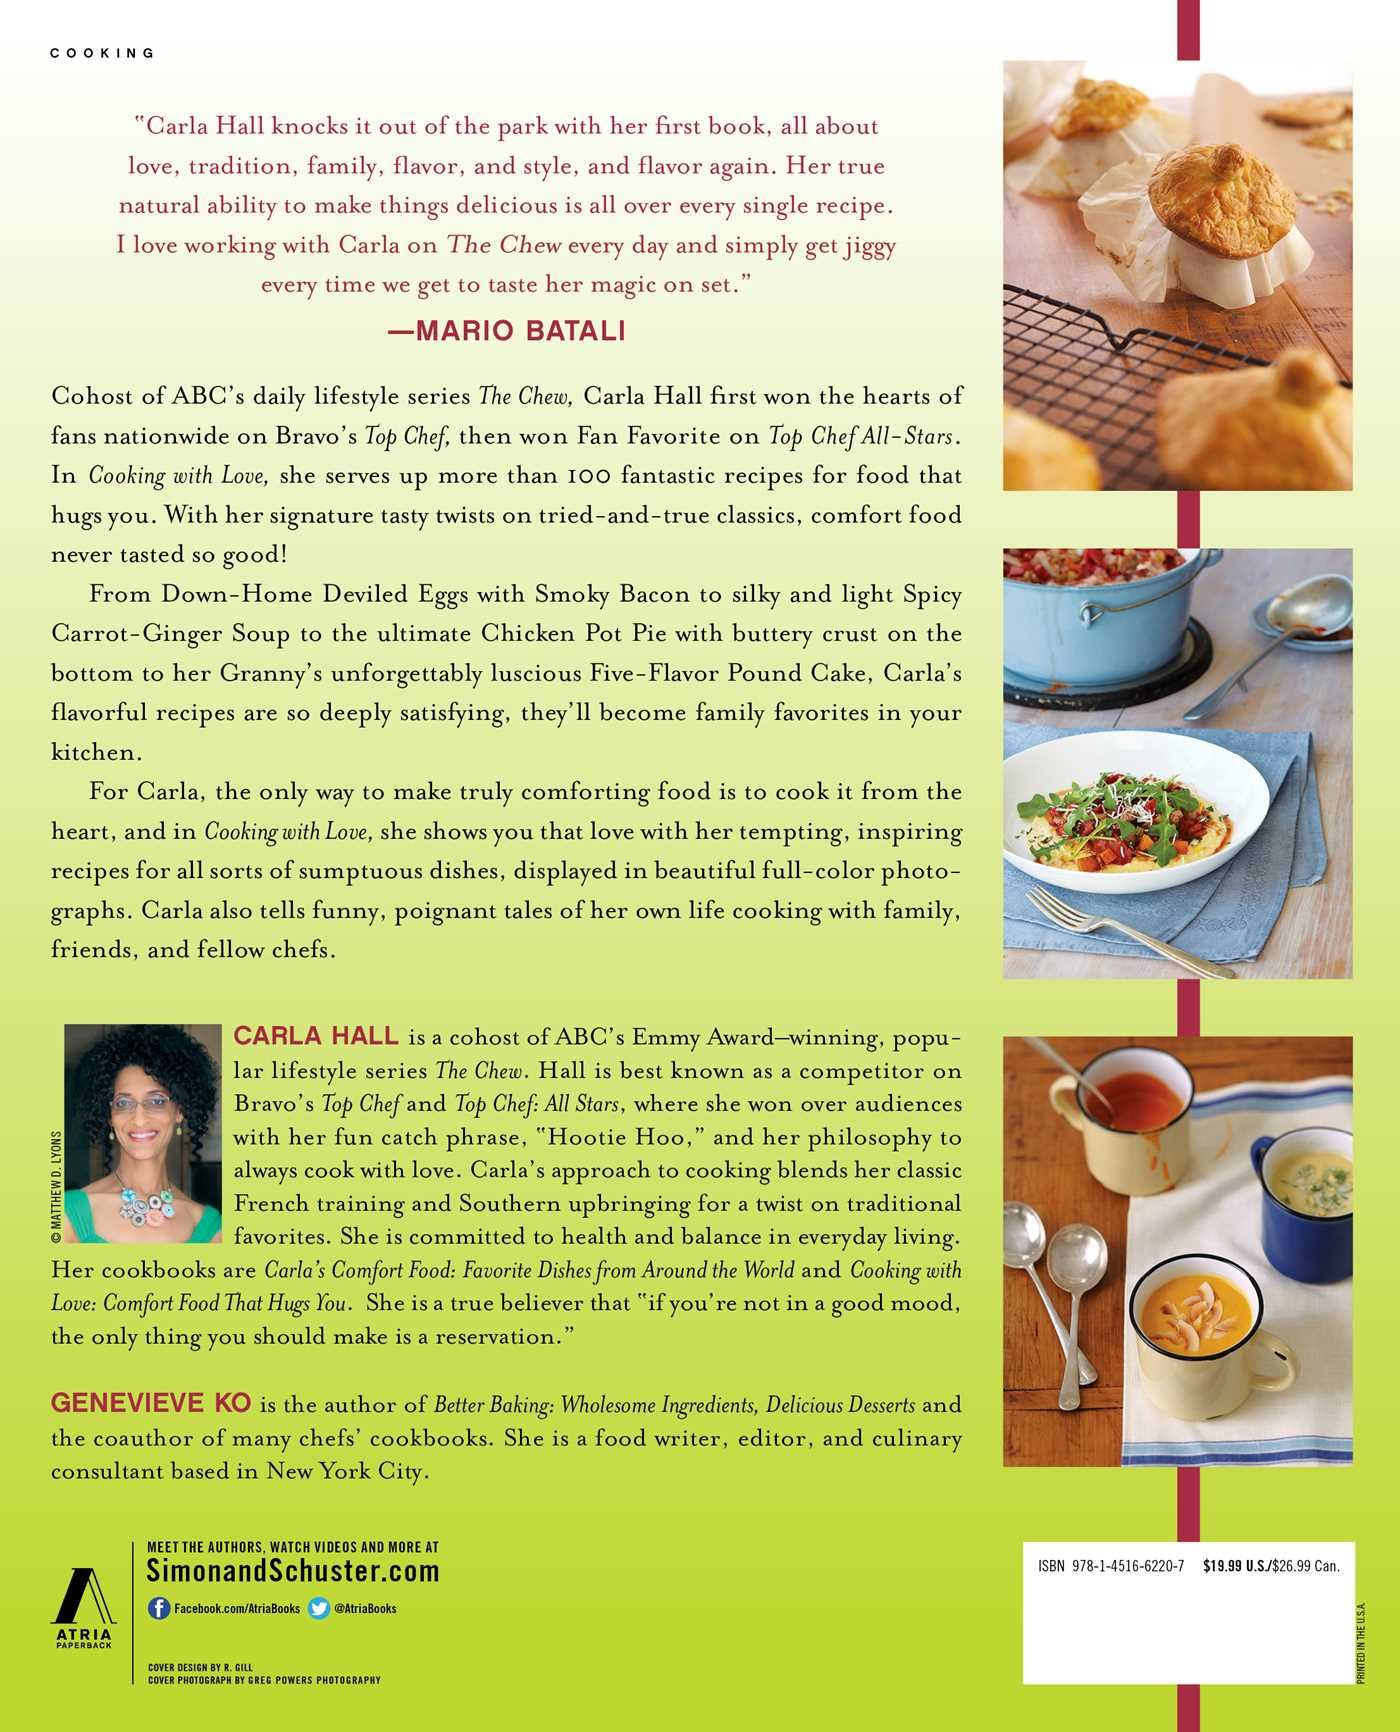 Cooking with love comfort food that hugs you carla hall genevieve cooking with love comfort food that hugs you carla hall genevieve ko 9781451662207 amazon books forumfinder Image collections